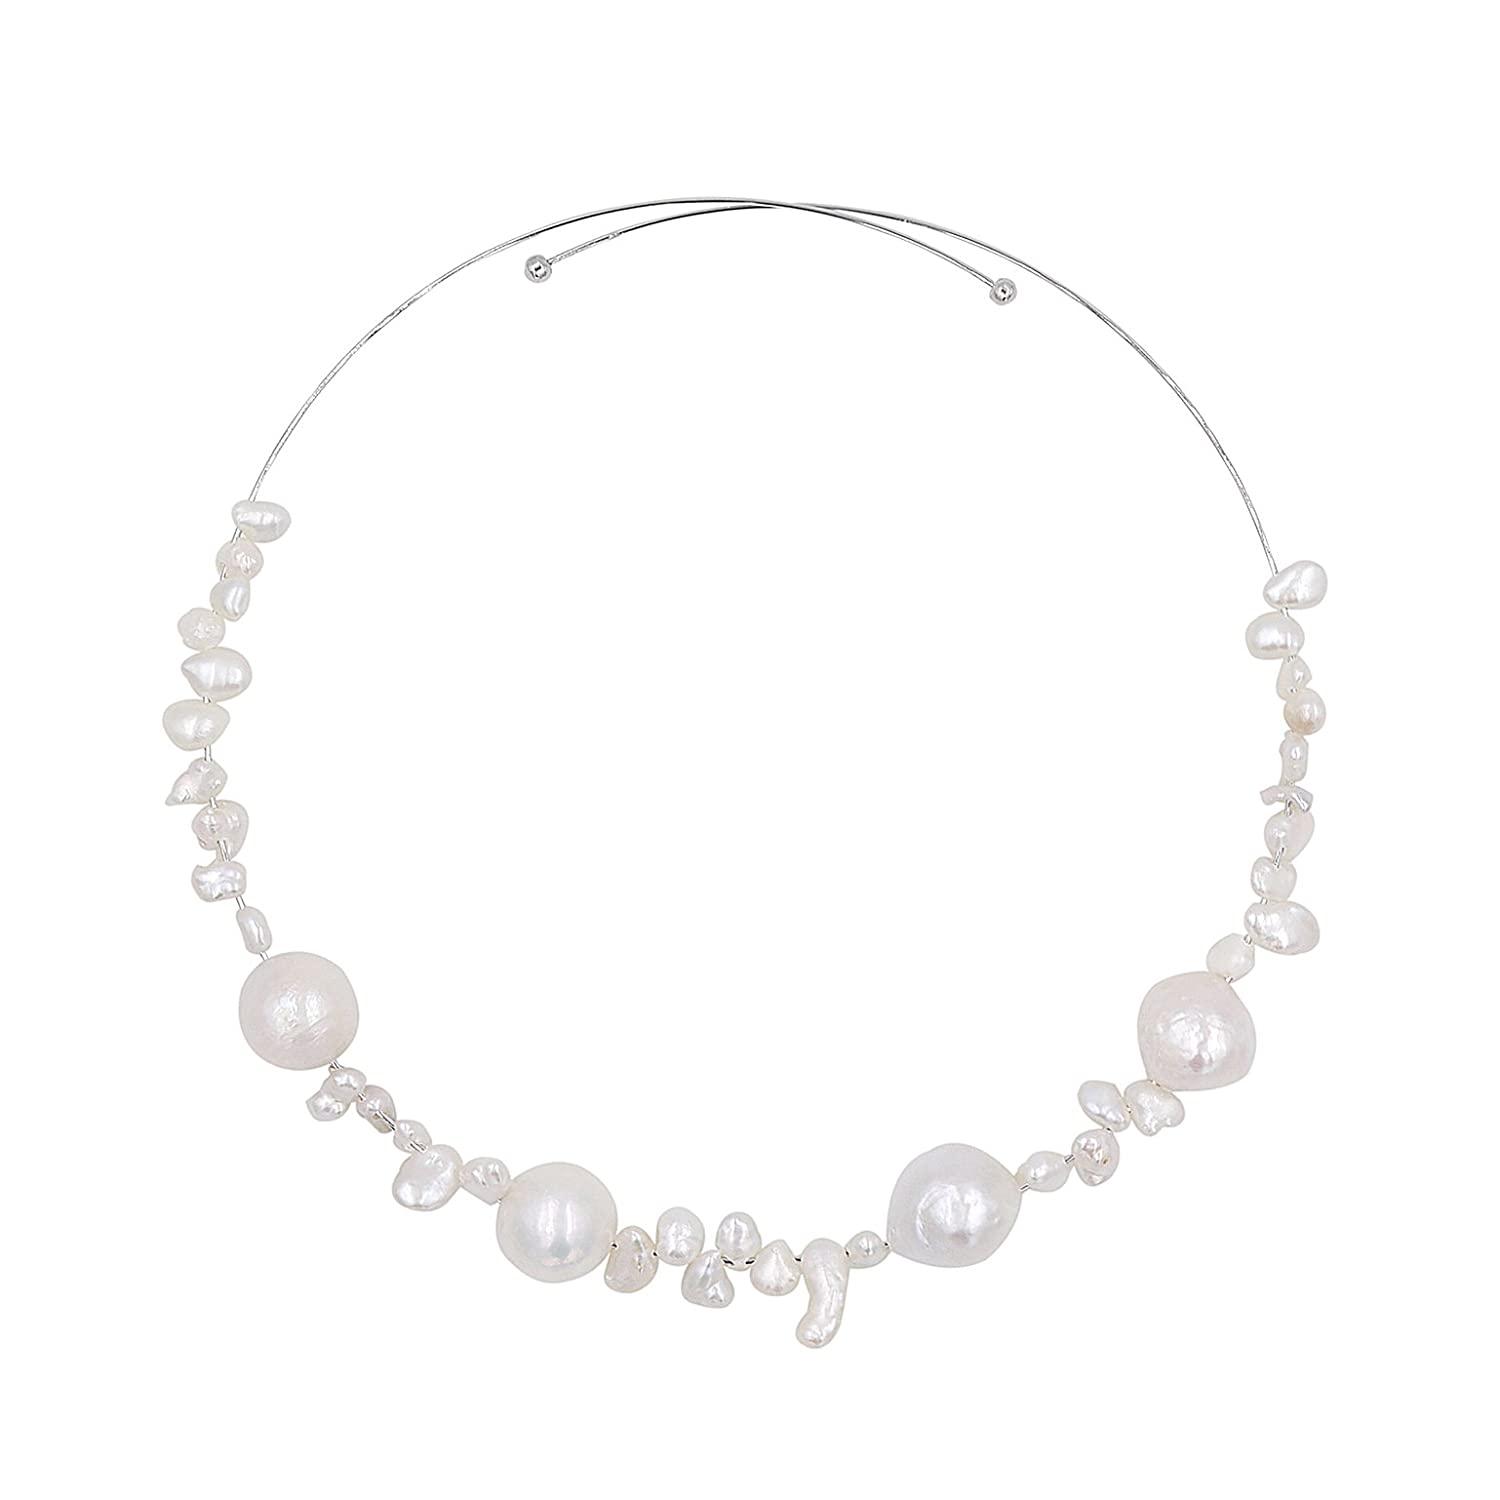 Lee Lee N214Z-Baroque Pearl Beauty Elastic Choker Necklace Birthday Gift Designer Jewelry Silver